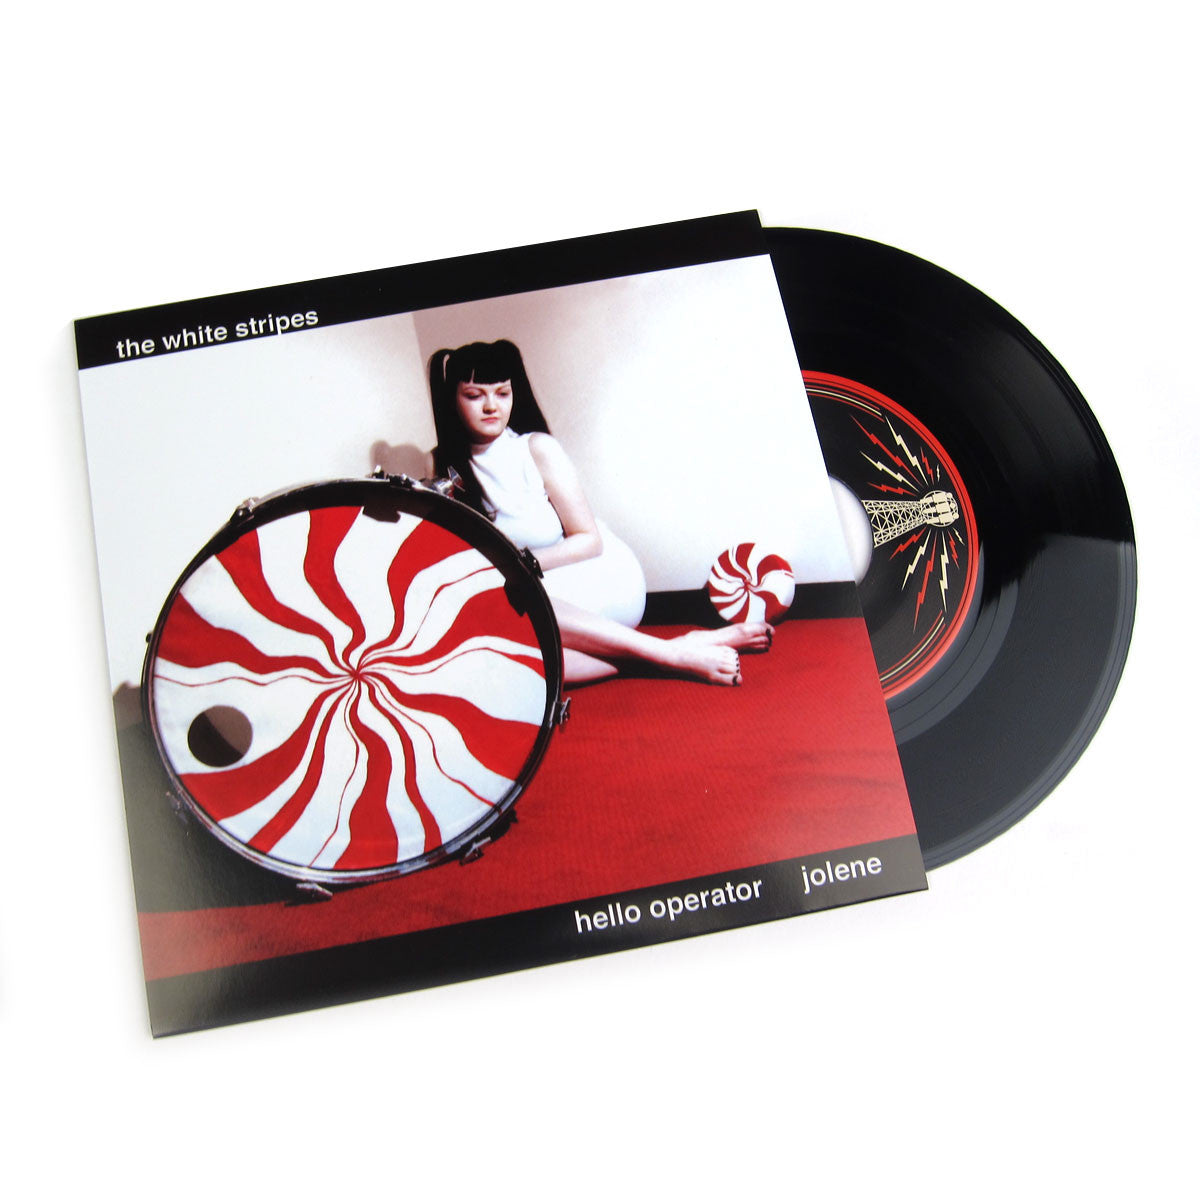 The White Stripes: Hello Operator / Jolene Vinyl 7""